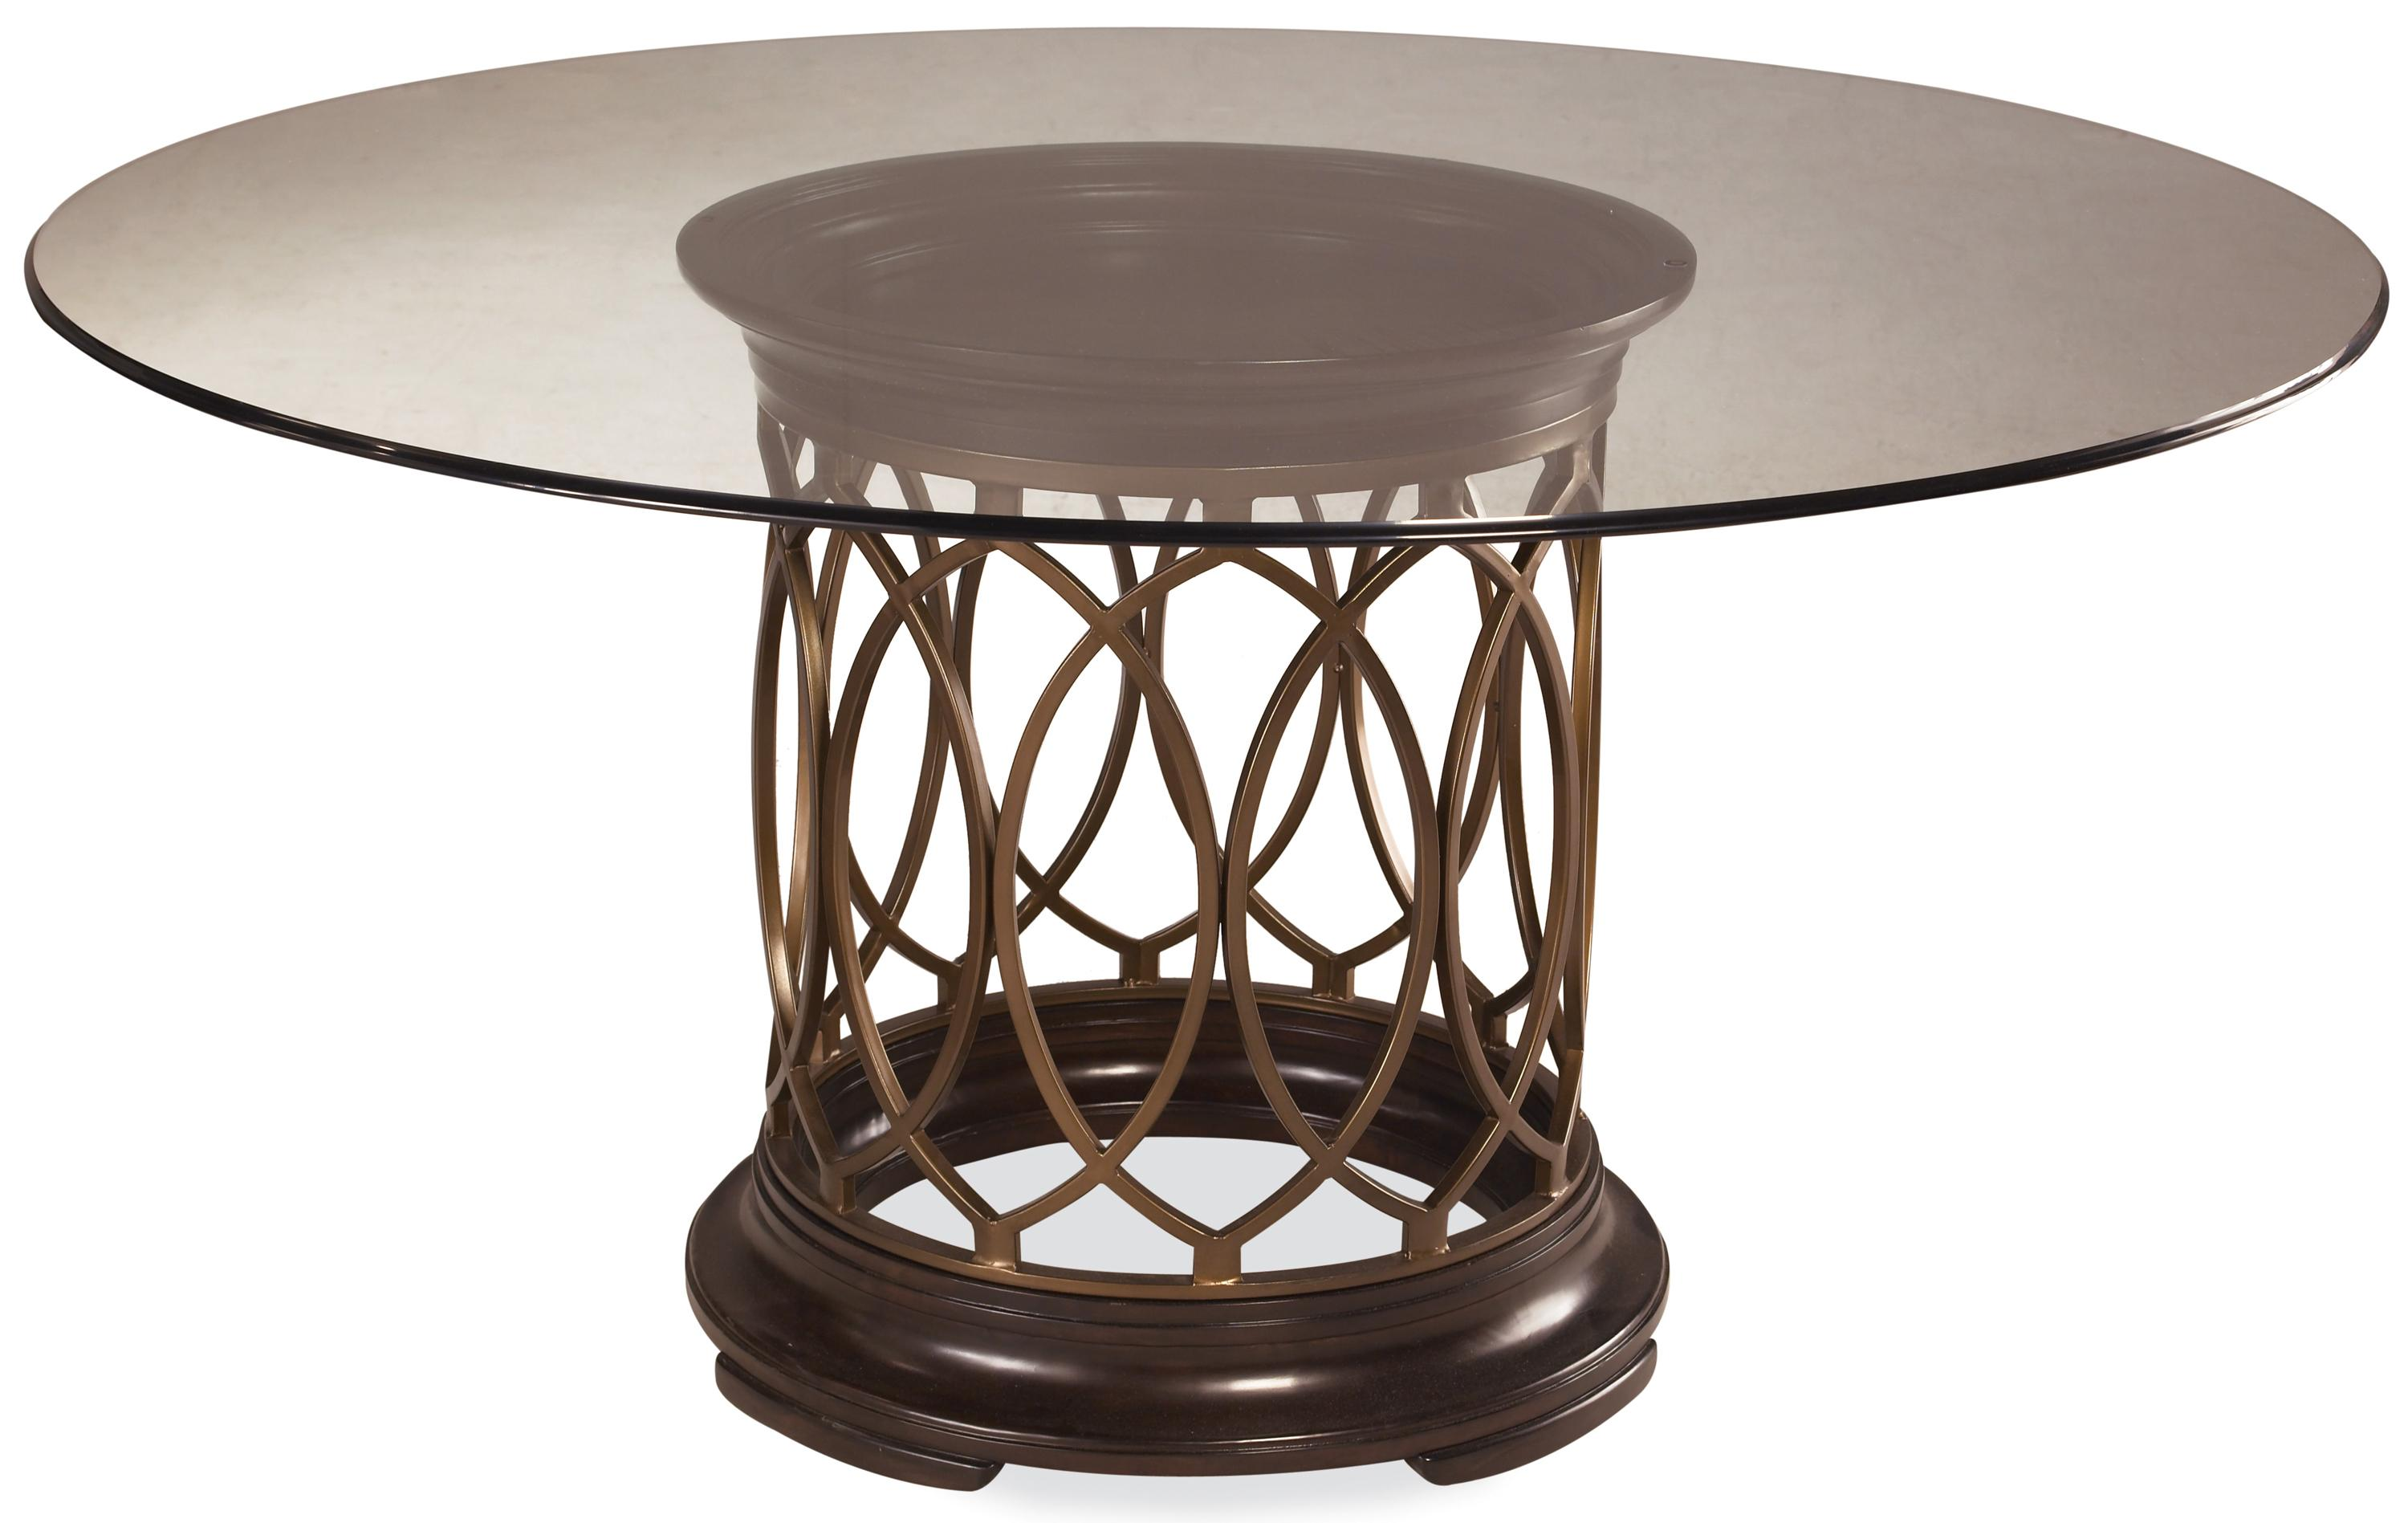 Round Glass Top Dining Table Intrigue Round Glass Top Single Pedestal Dining Table With Metal Marquise Detail By A R T Furniture Inc At Olinde S Furniture